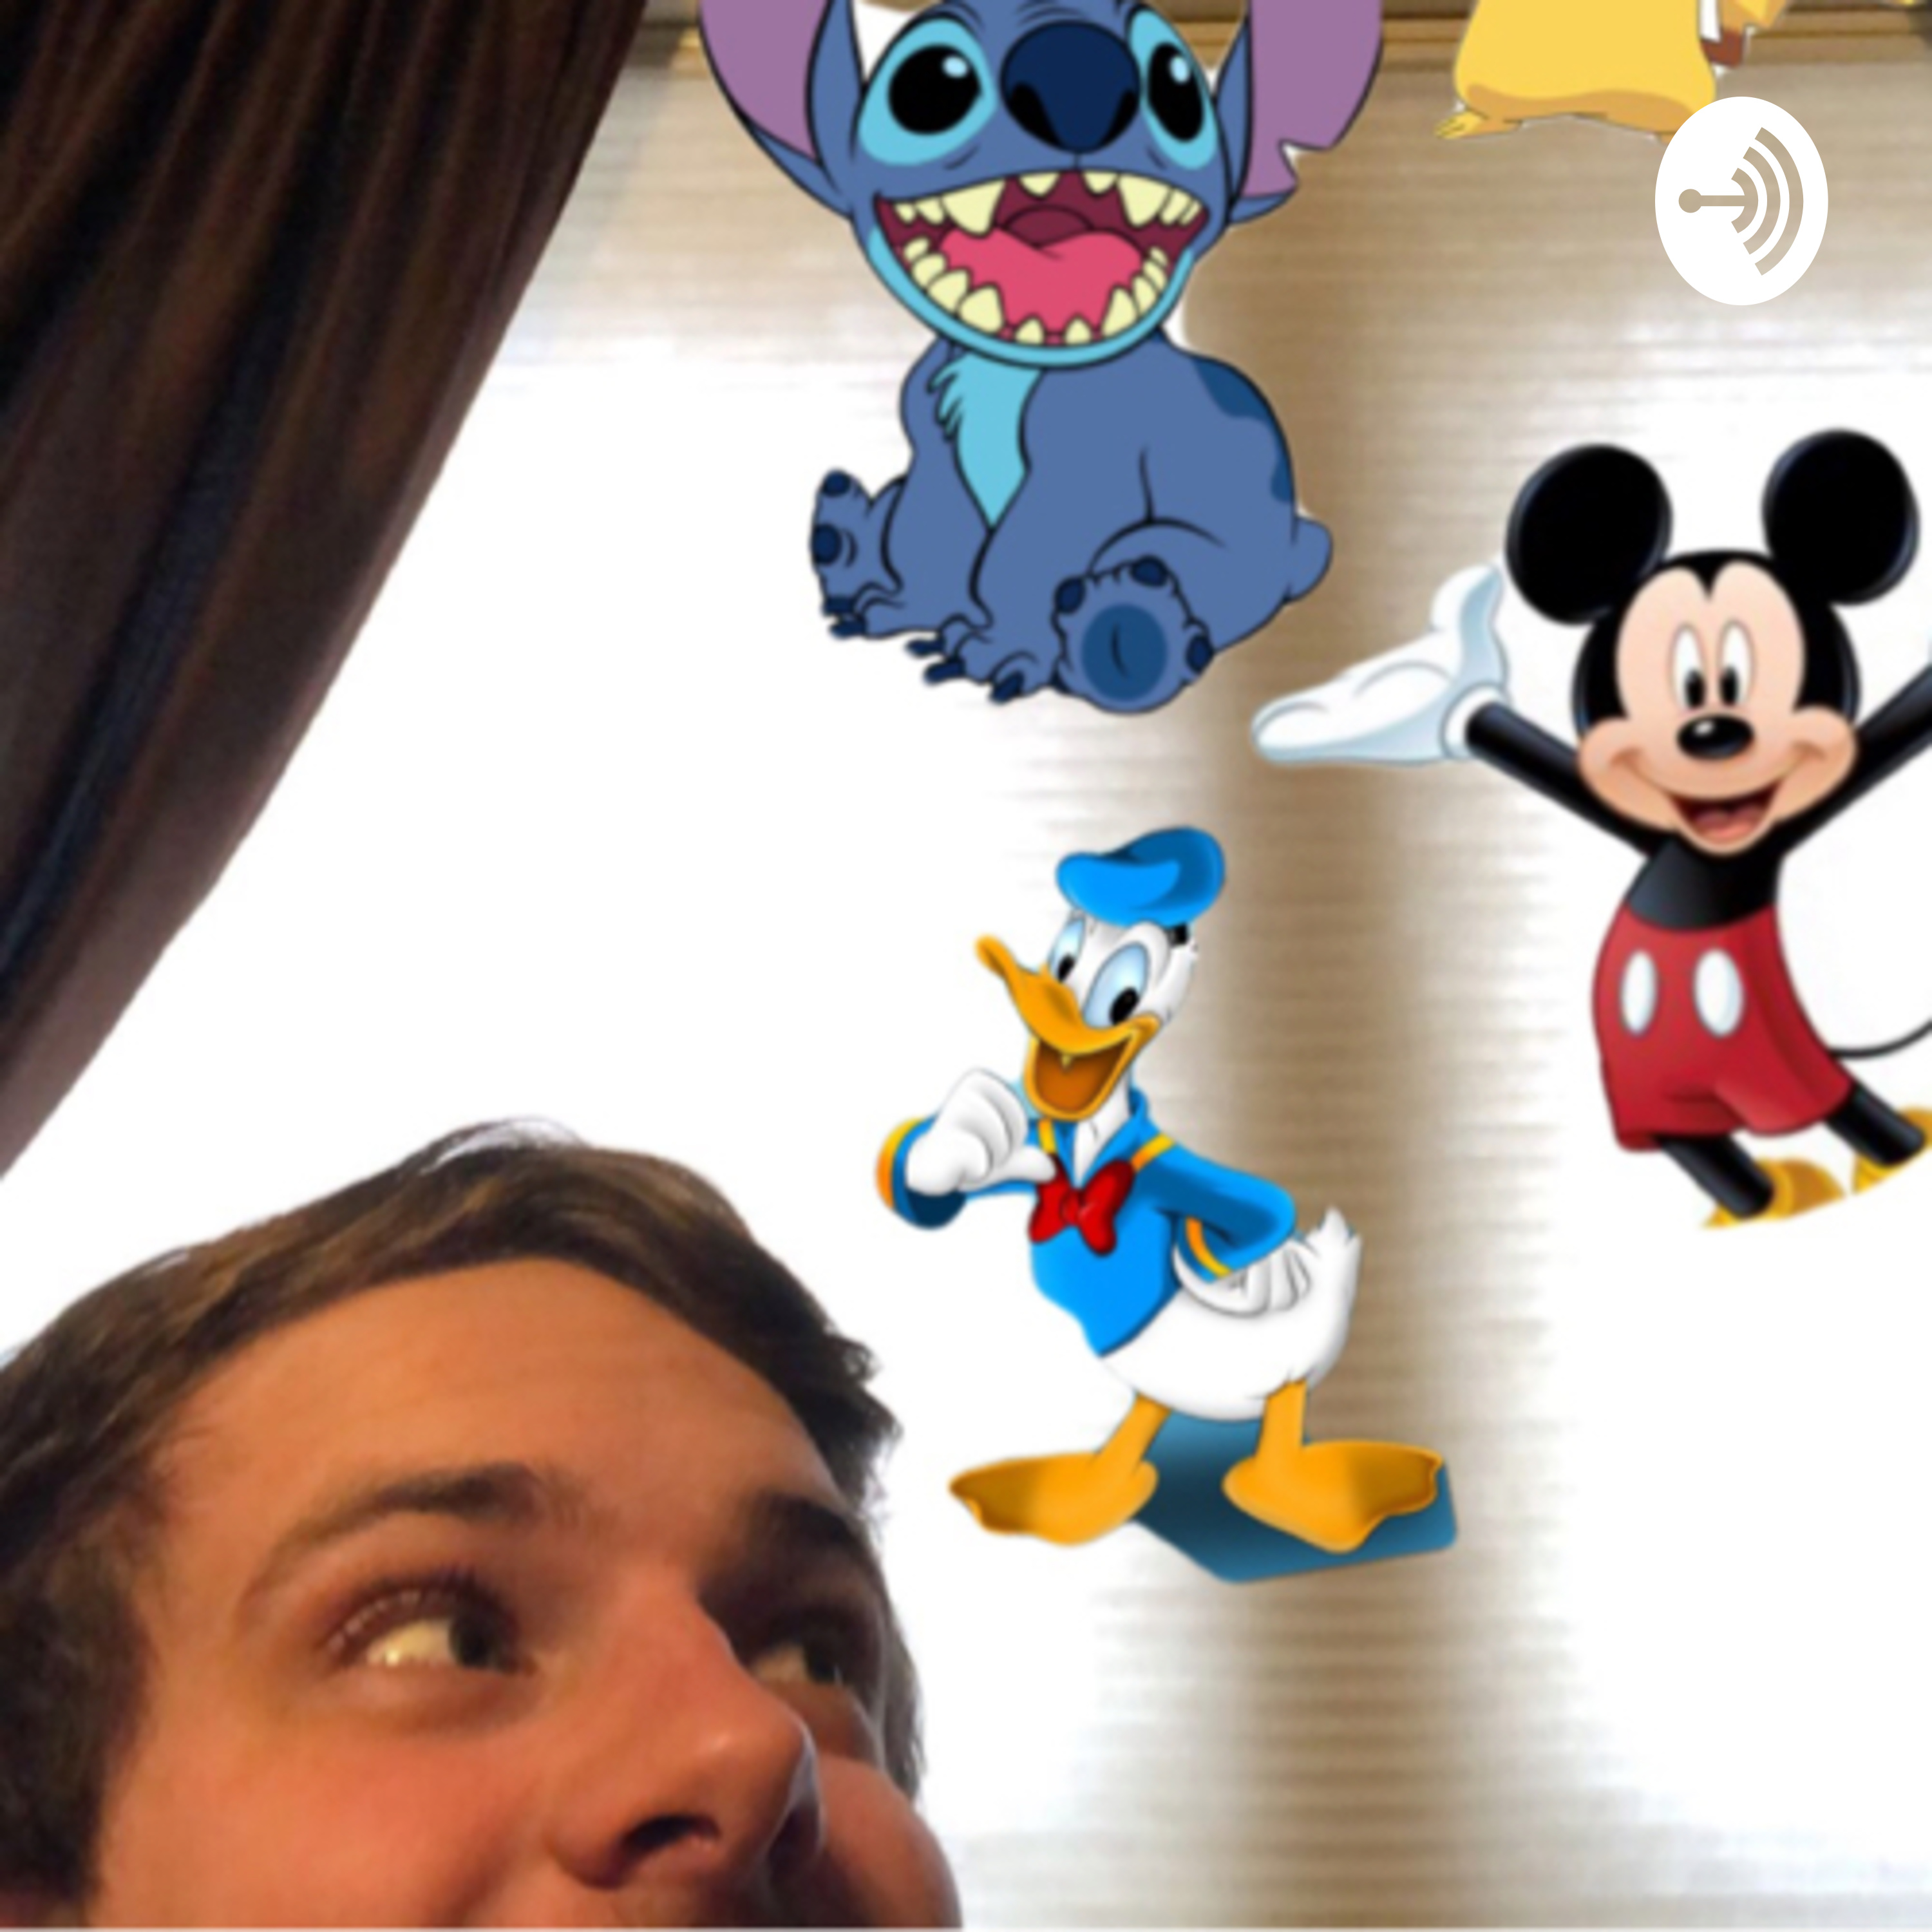 Animated Characters (Special Guest: Stitch)